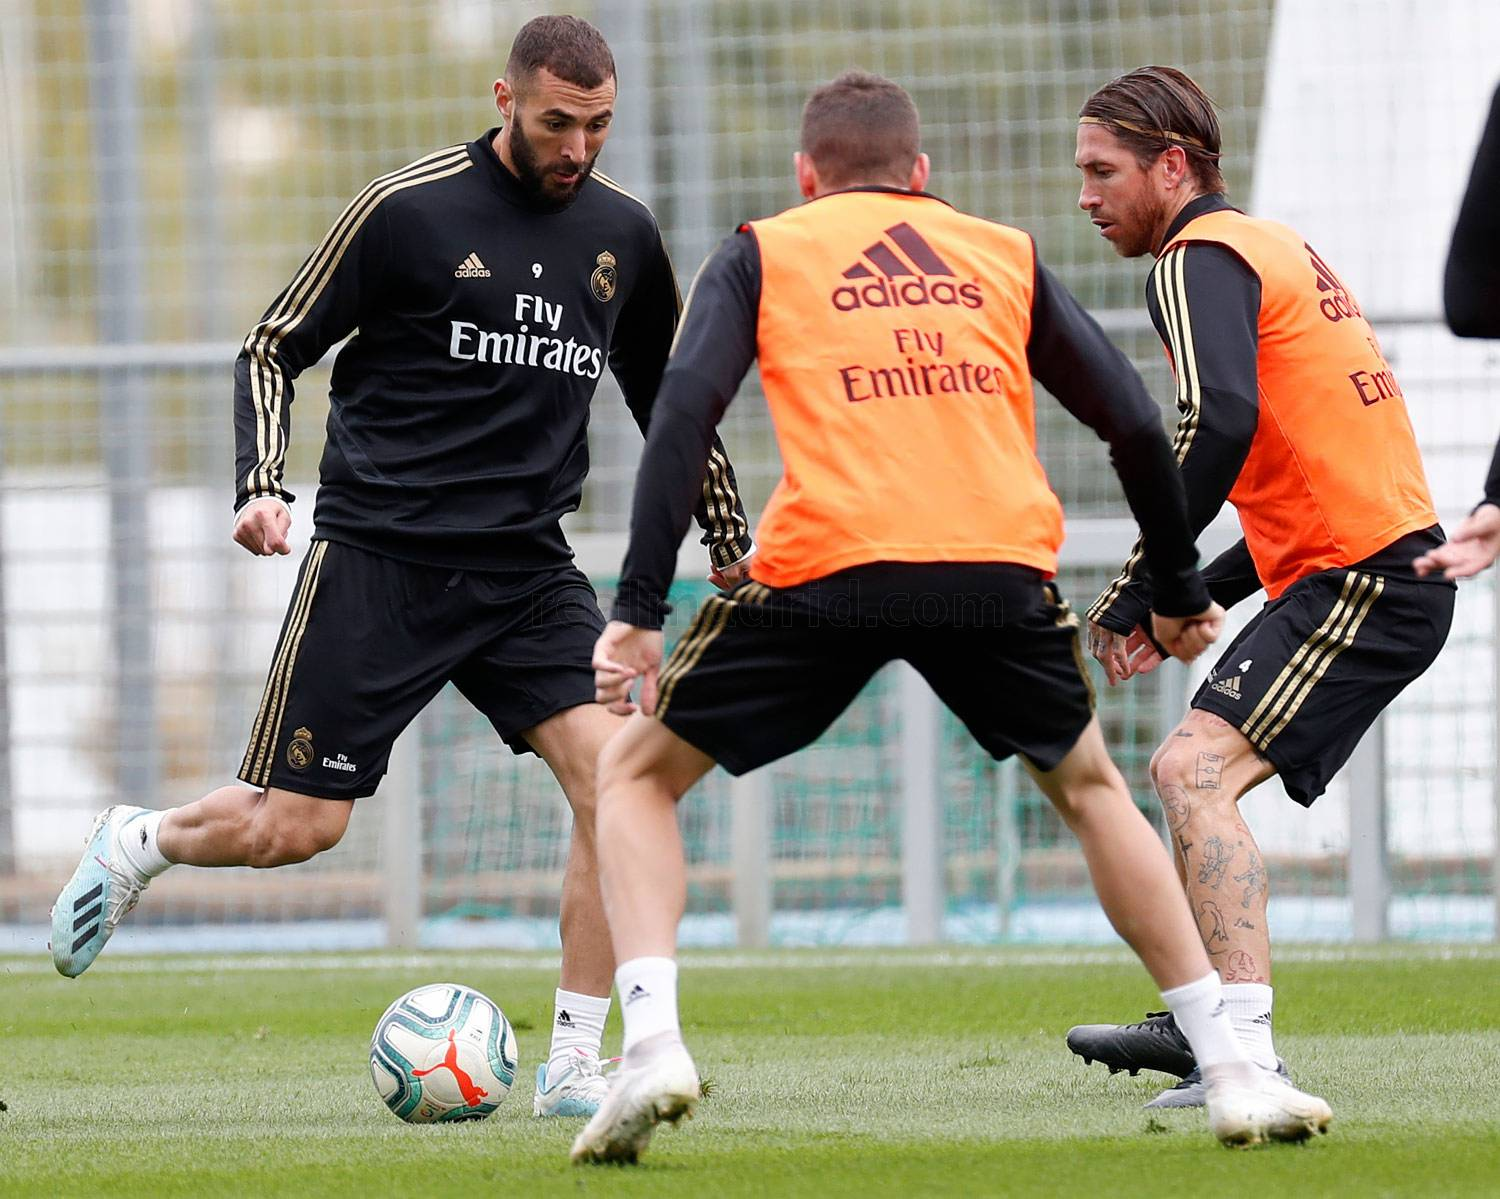 Real Madrid - Entrenamiento del Real Madrid  - 18-10-2019